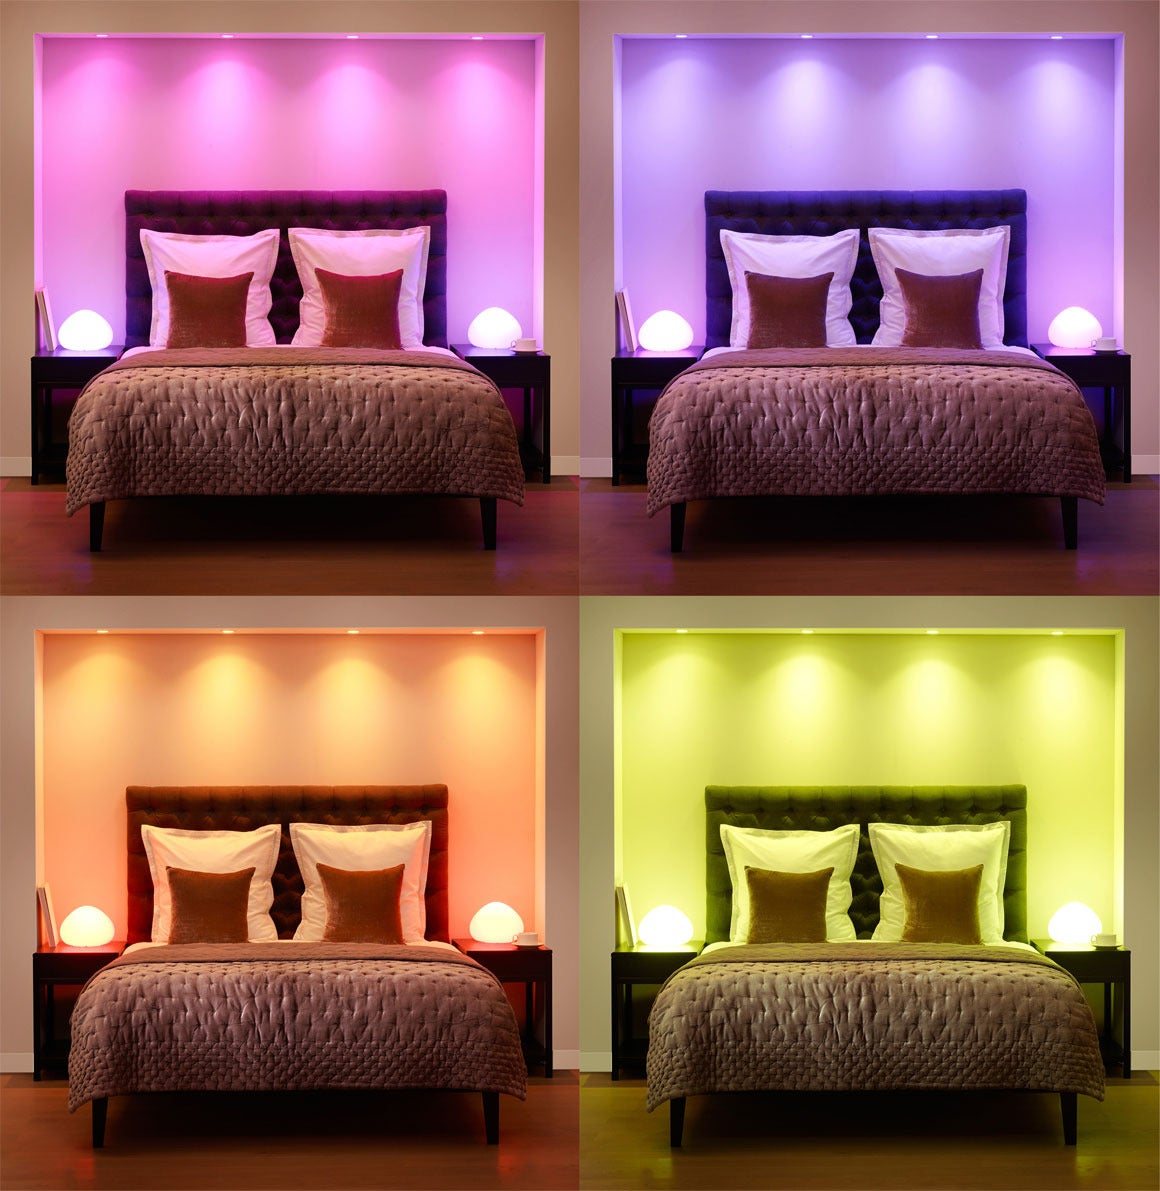 How To Optimize Your Home Lighting Design Based On Color Temperature